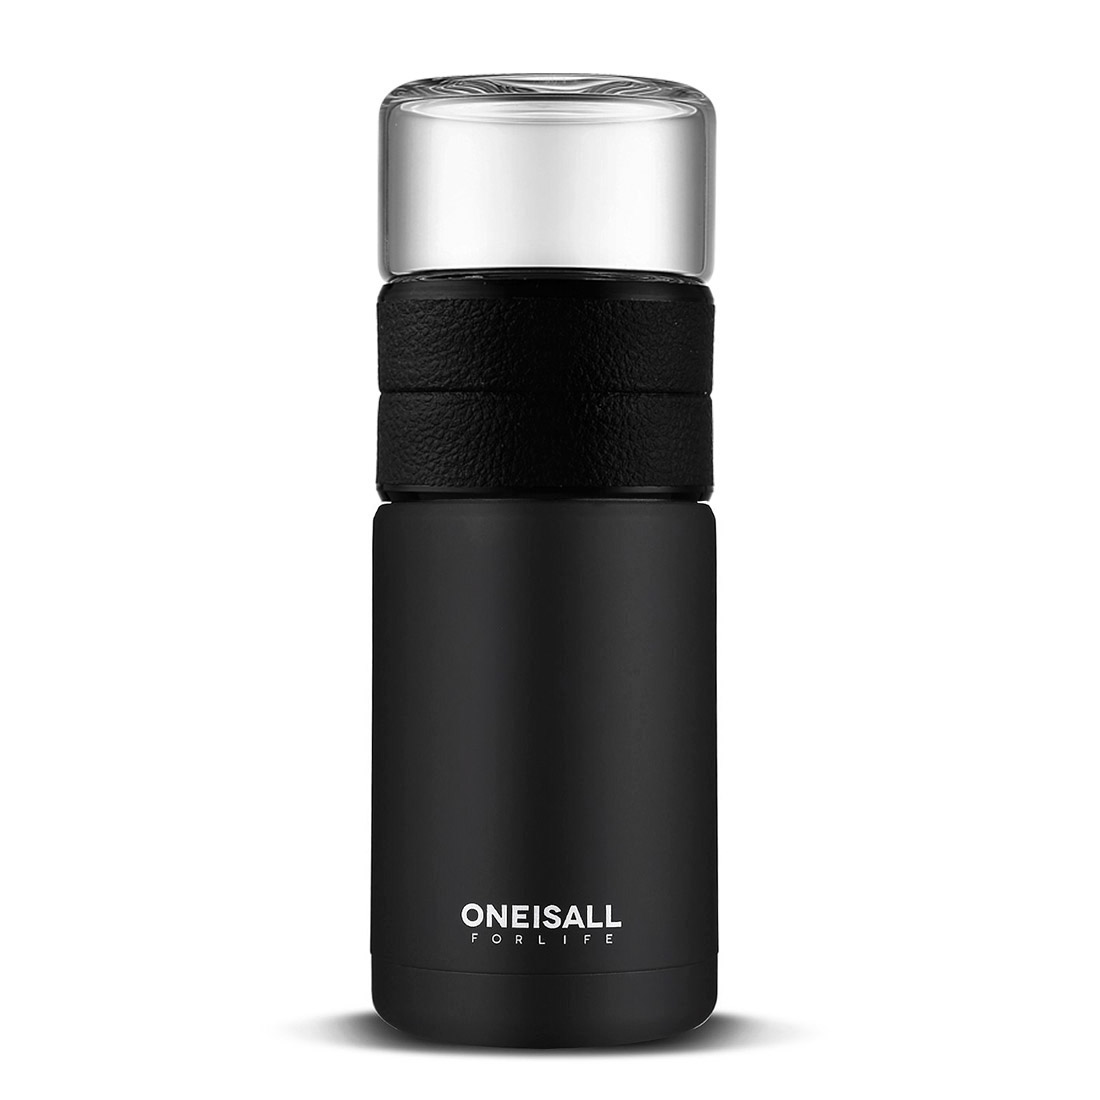 H90433d0c888c4be5bcfae75f13aead04a - Thermofuse flask